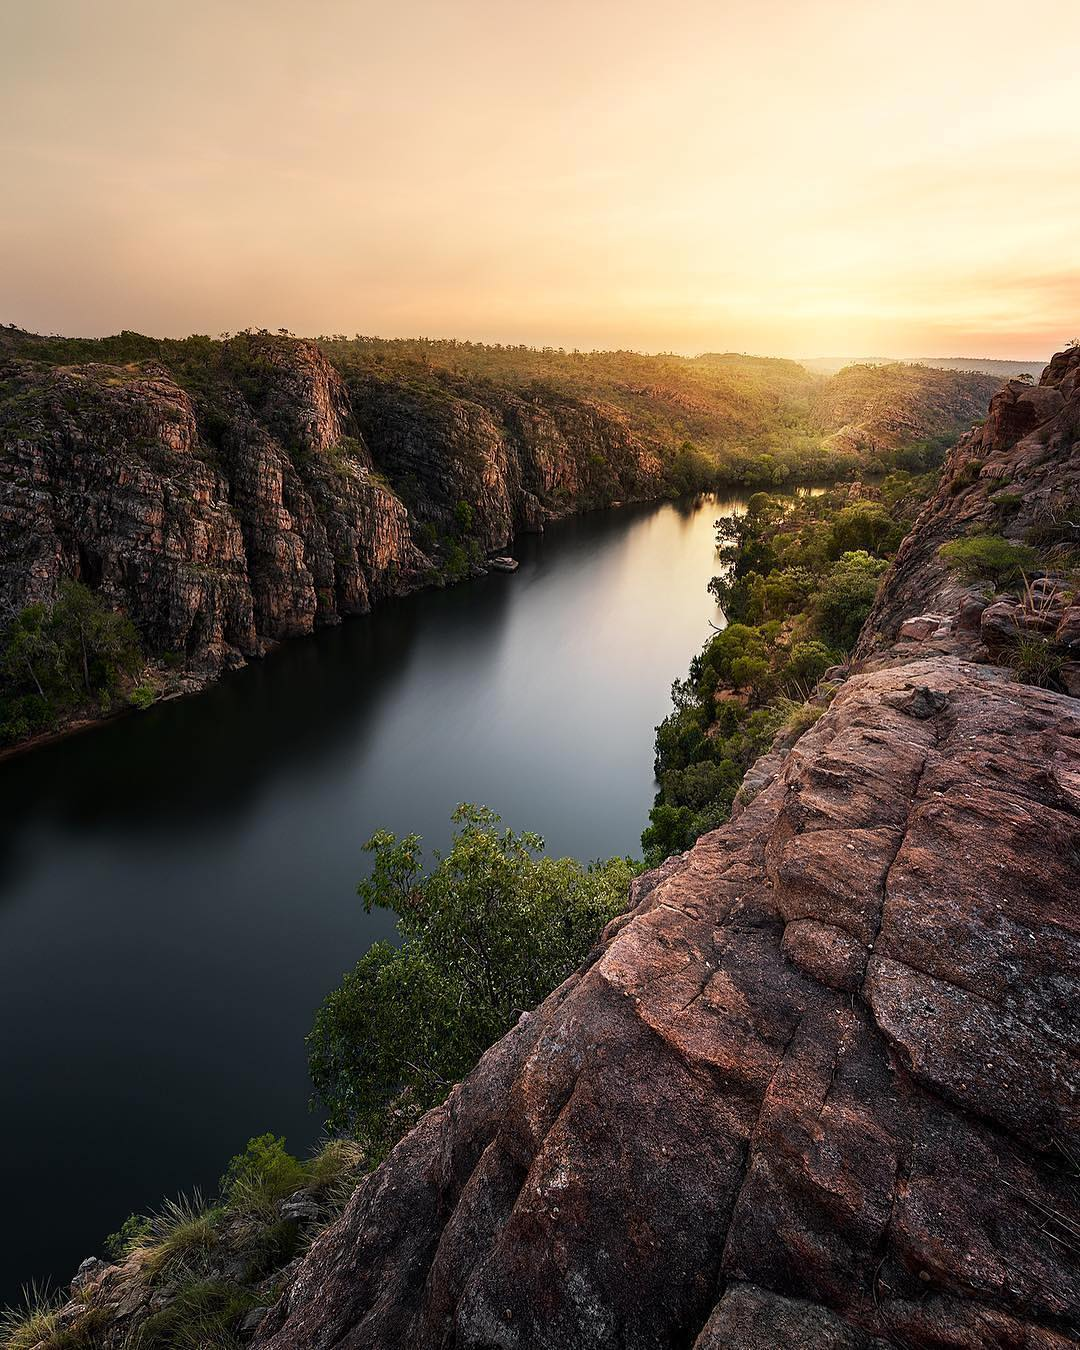 visit a total of thirteen gorges that make up the Katherine gorge